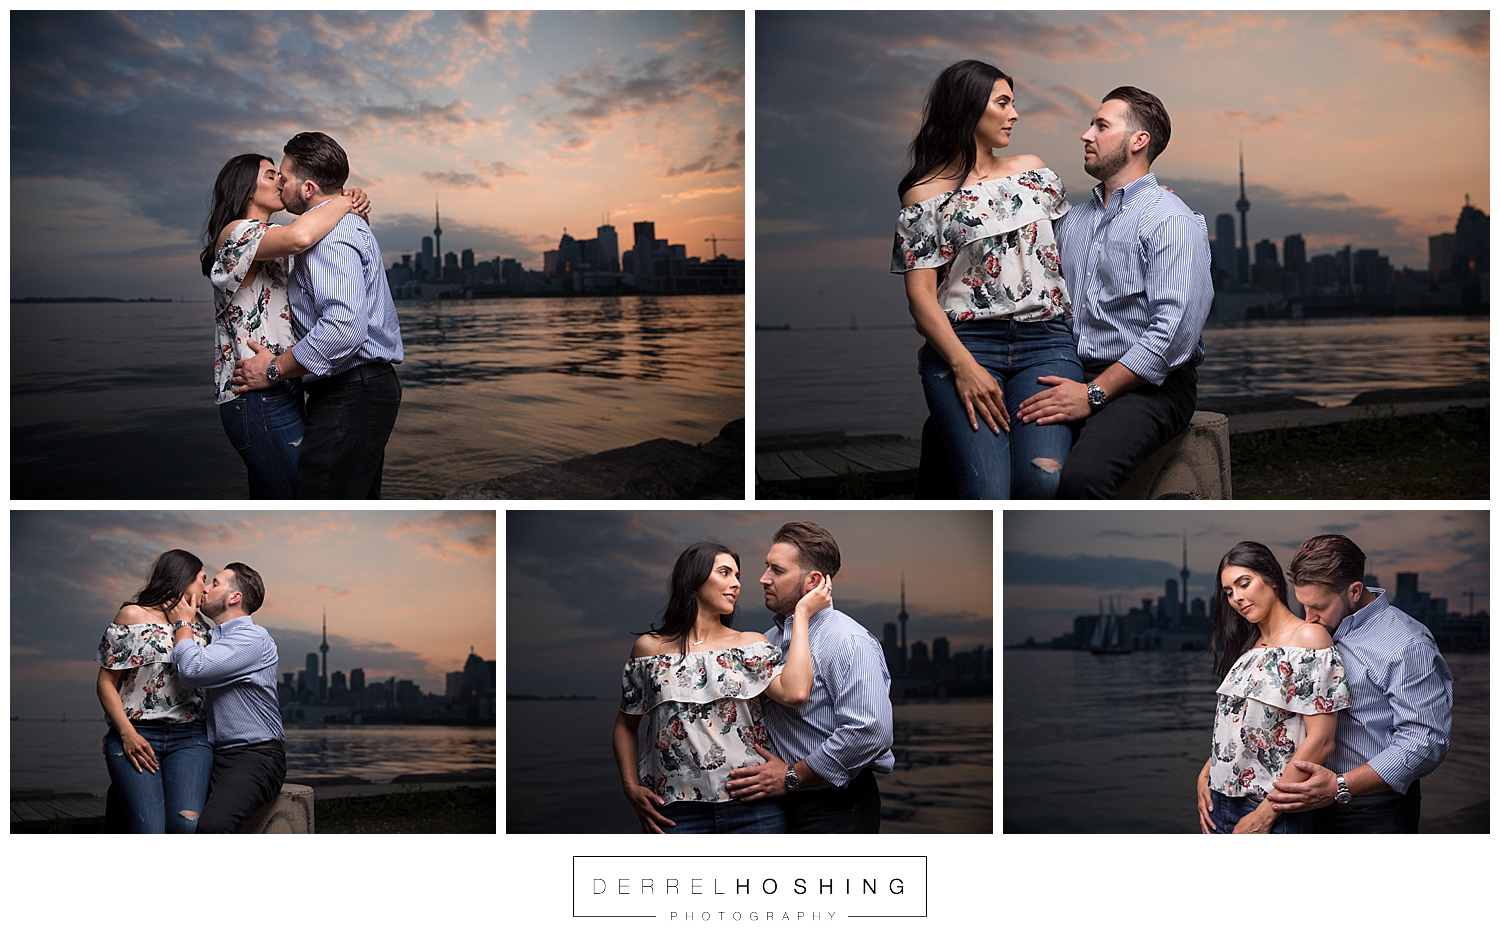 Distillery-District-Polson-Pier-Toronto-Engagement-Shoot-Wedding-Photographer-0013.jpg